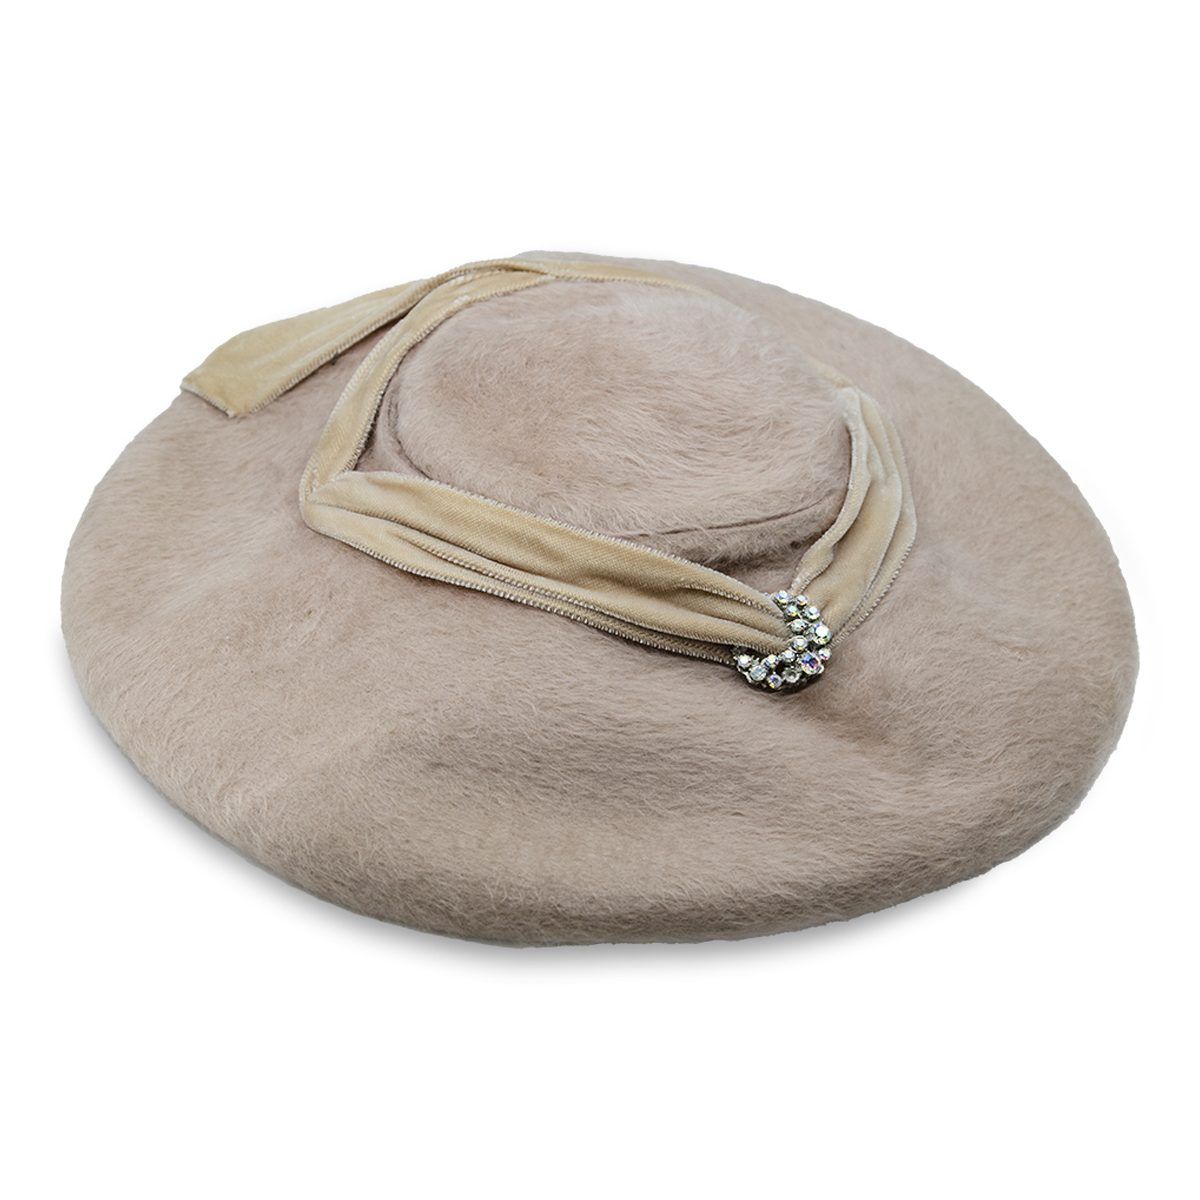 Taupe Platter hat copy